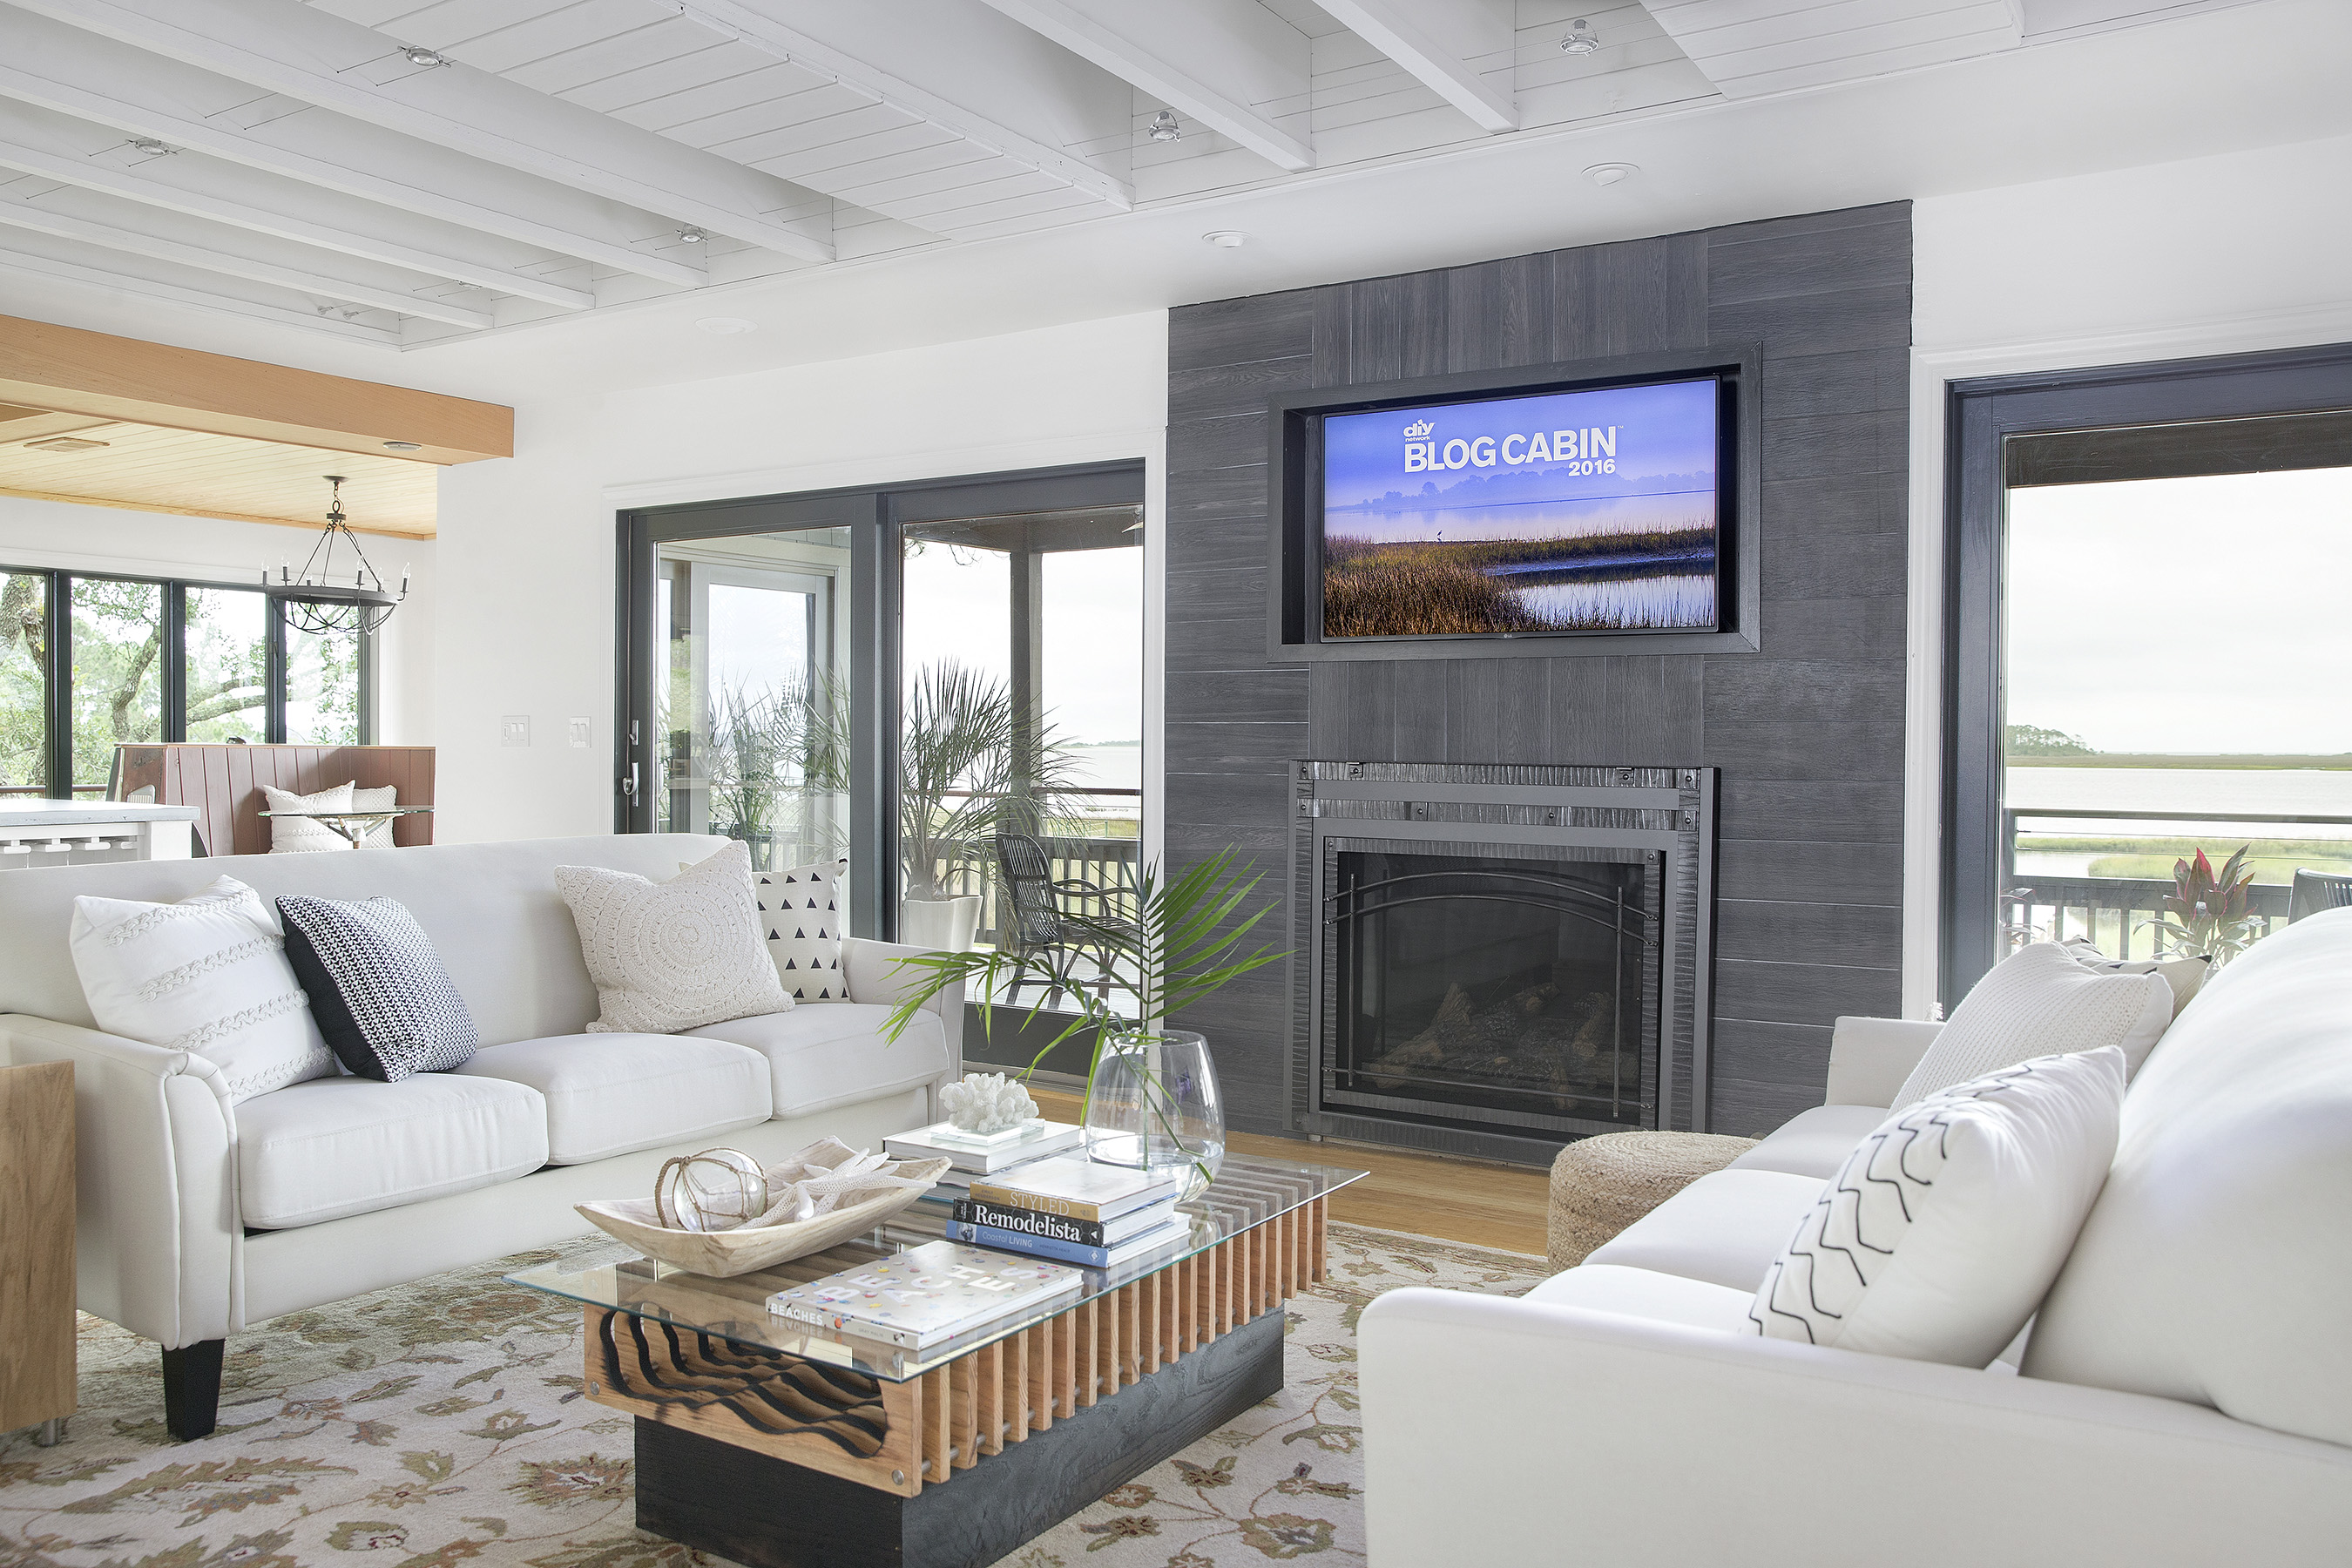 In the DIY Network Blog Cabin 2016 living area, the view takes center stage outside. Inside, a giant saltwater fish tank adds life to the space.